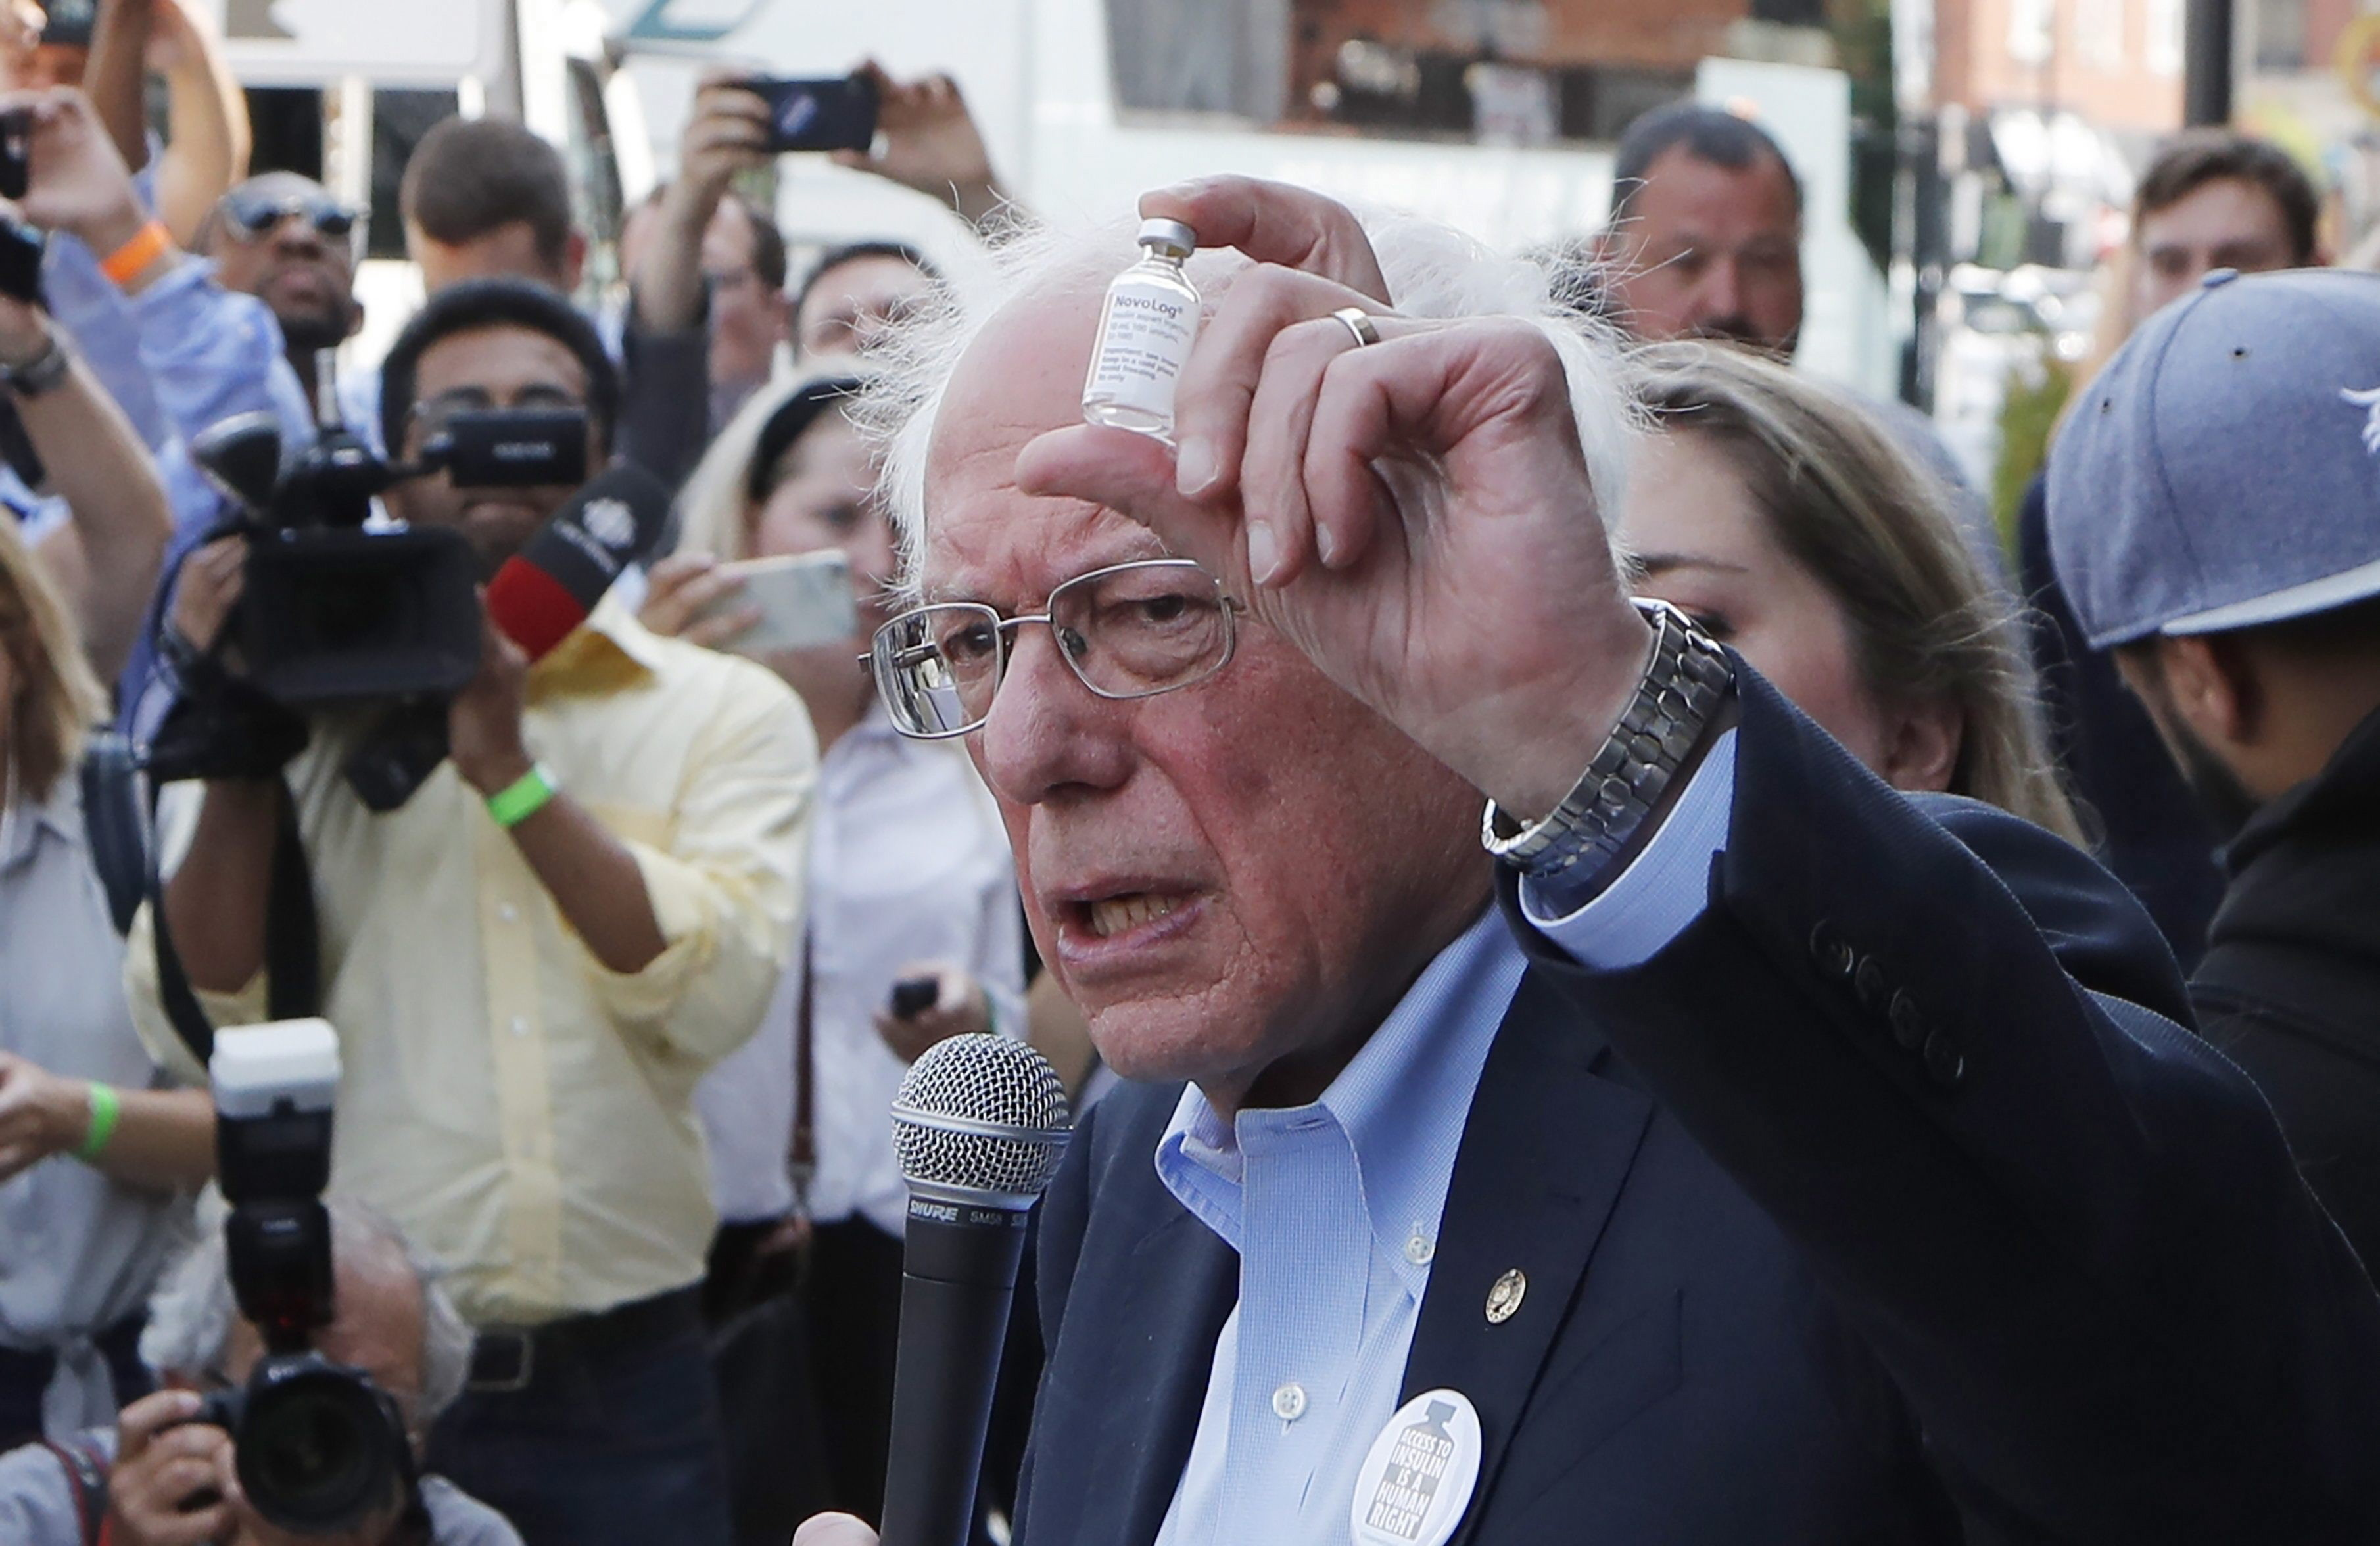 Democratic presidential candidate Sen. Bernie Sanders, I-Vt., holds an insulin vial as he addresses the media outside the Olde Walkersville Pharmacy, Sunday, July 28, 2019, in Windsor, Ontario. Sanders accompanied about a dozen people who purchased the dr